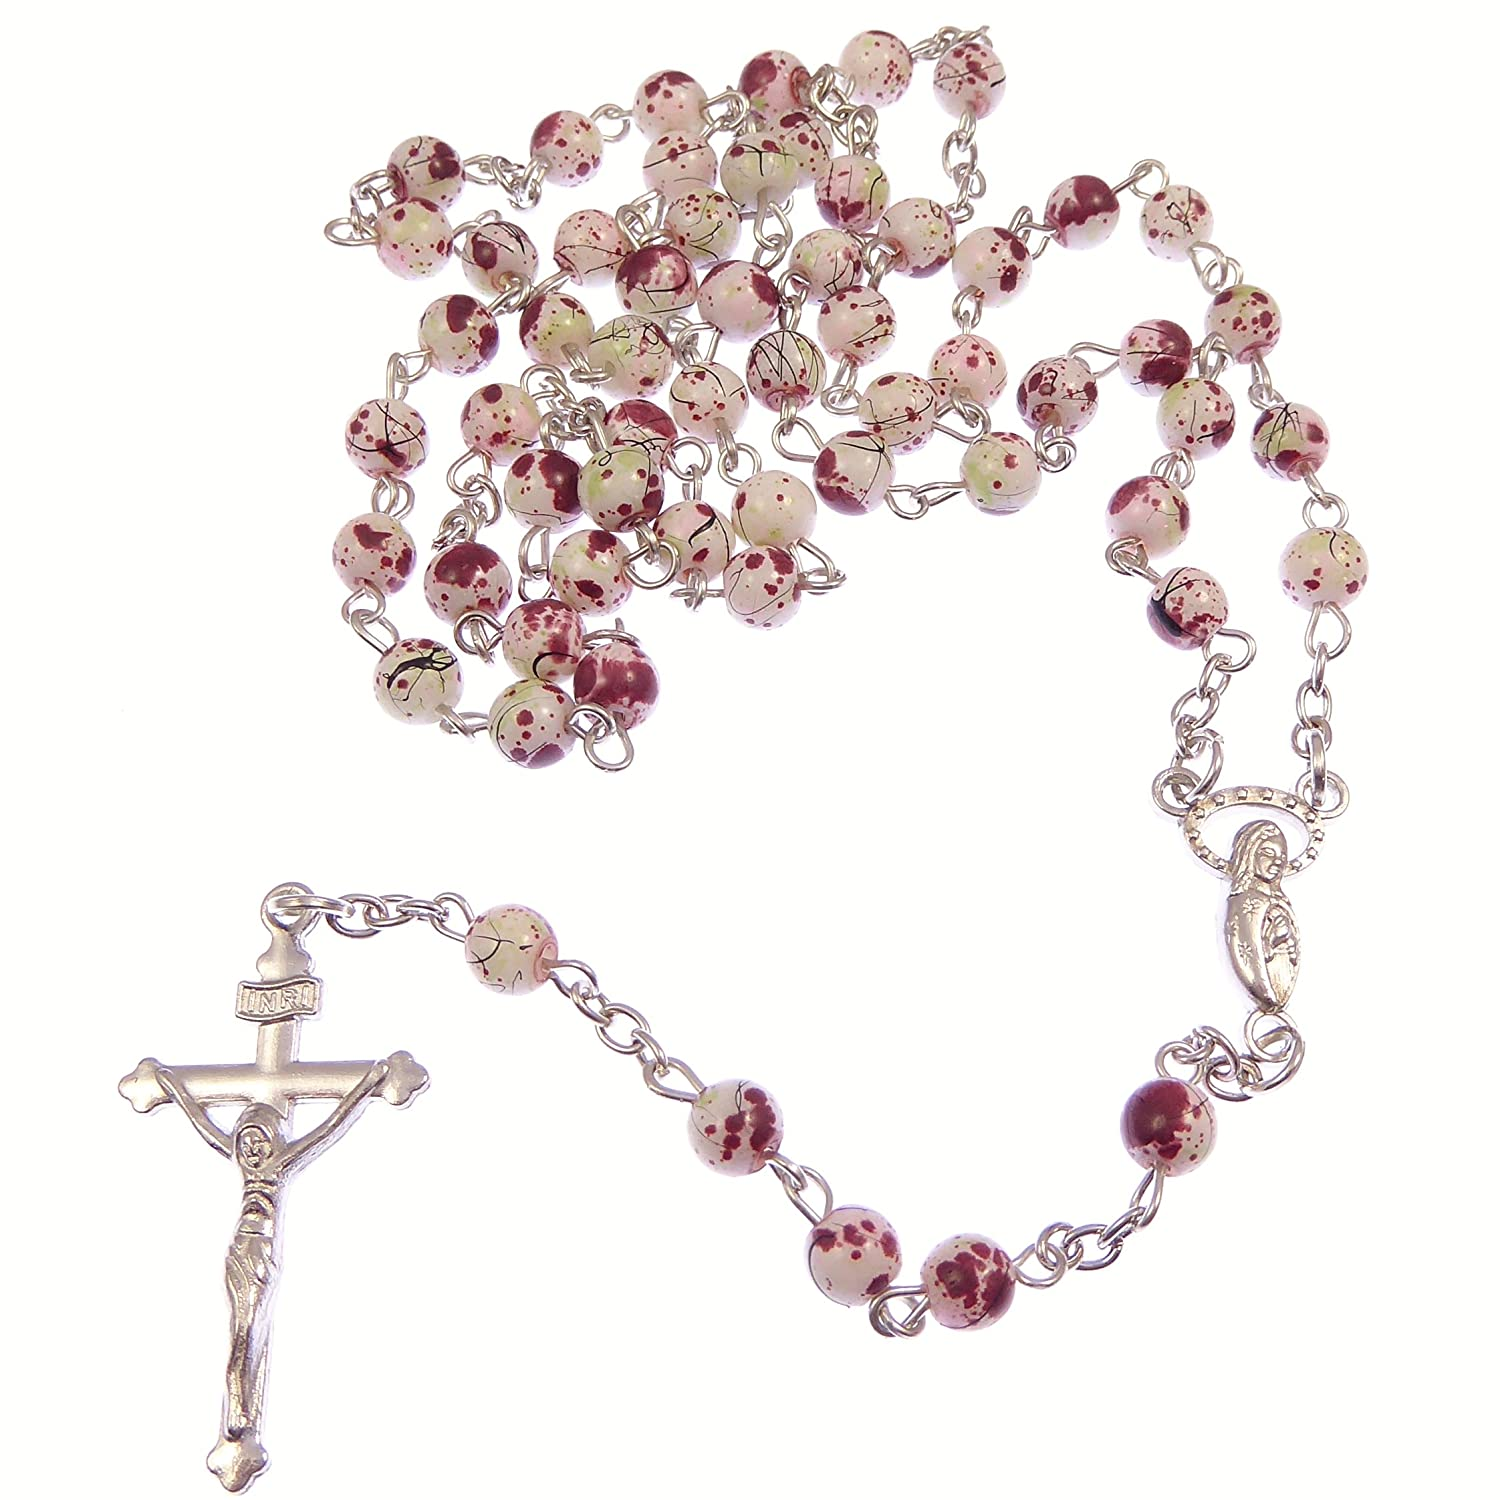 White & red marble round glass rosary beads on silver chain 51cm length necklace R. Heaven